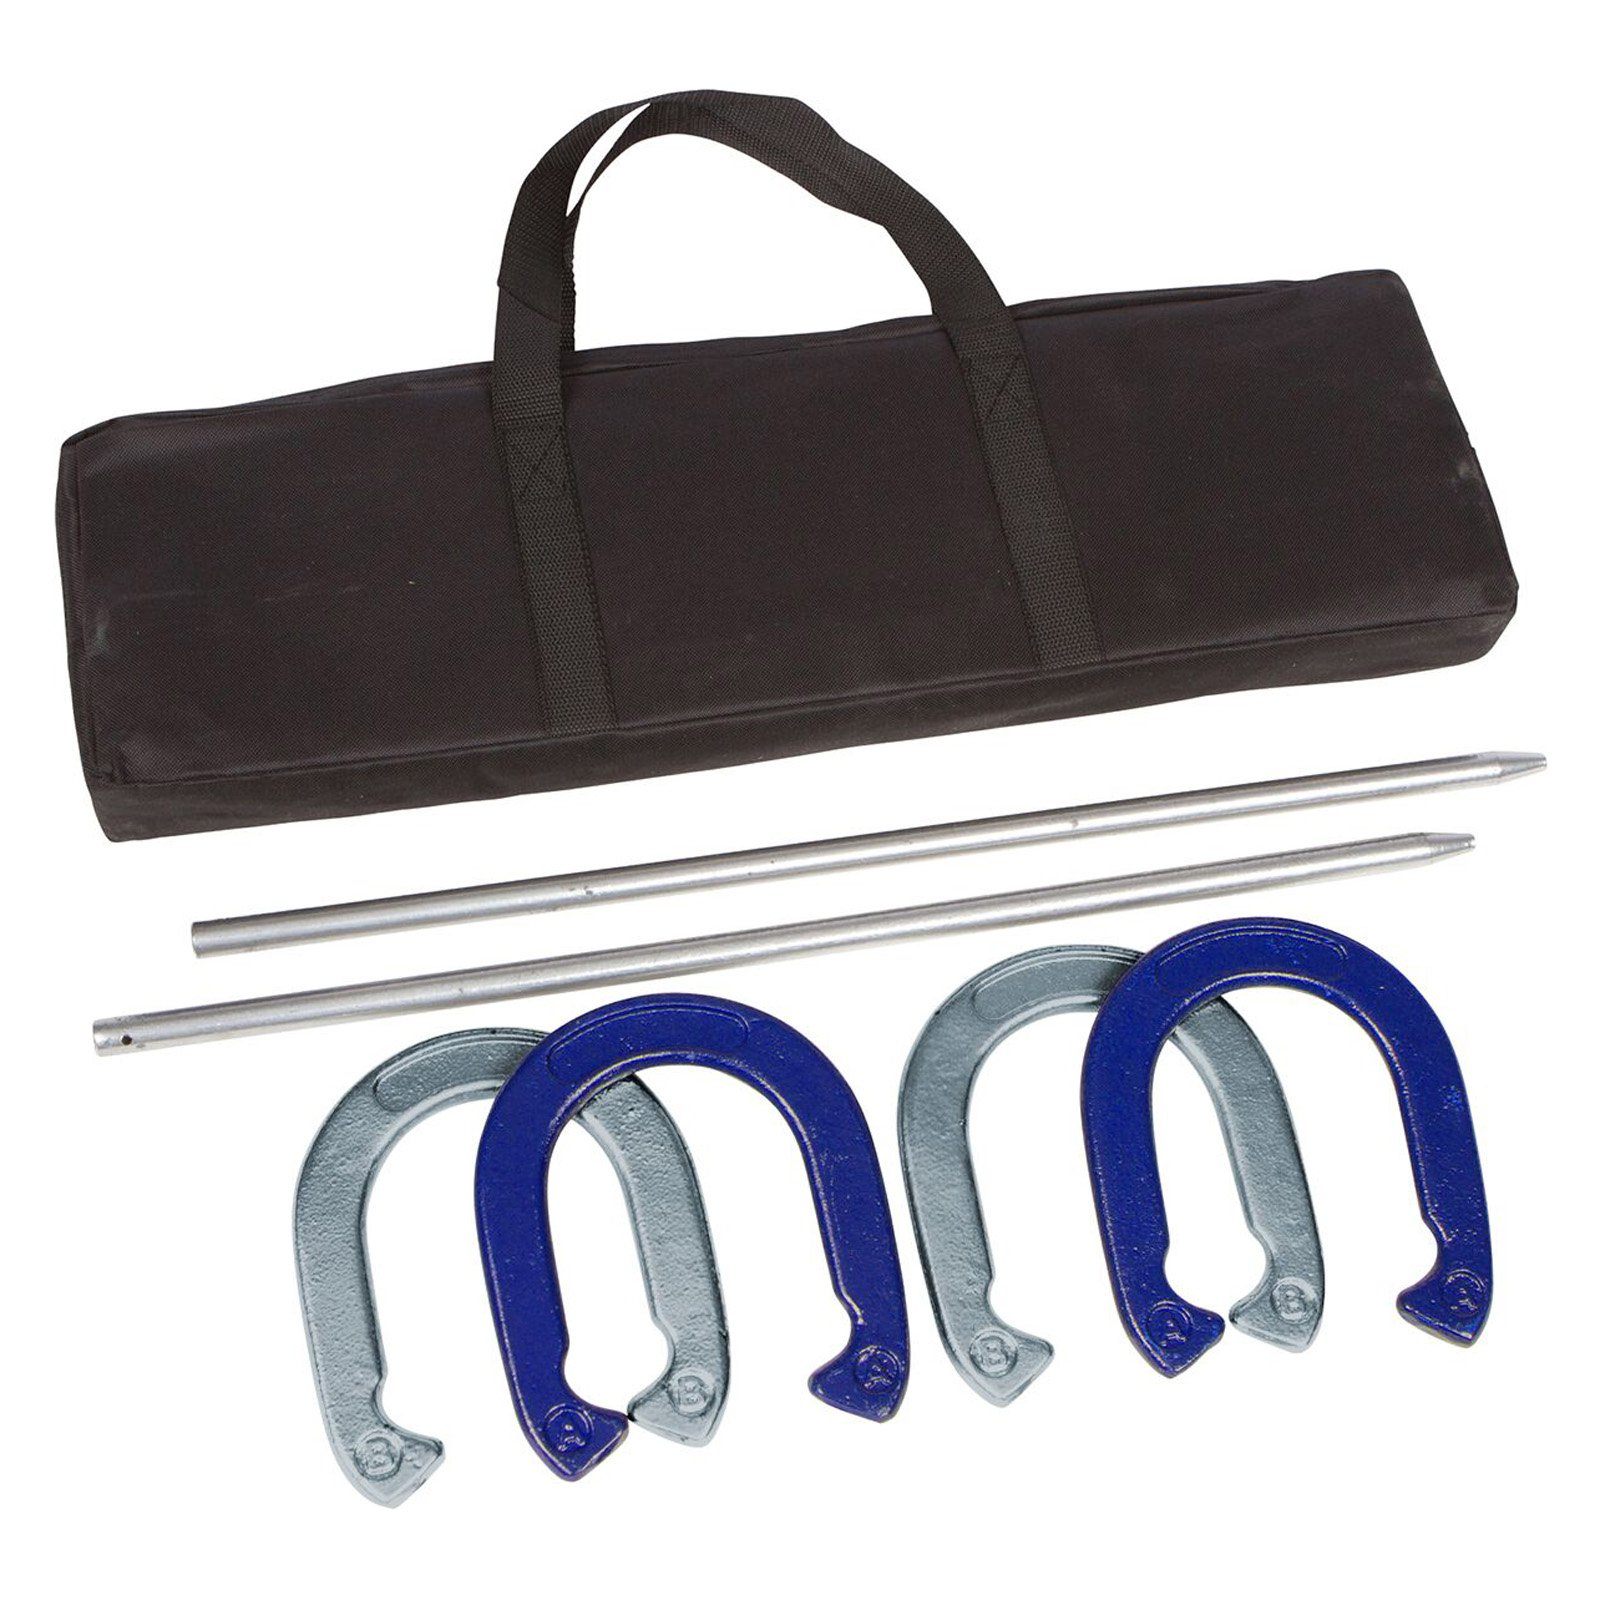 Tailgate360 Professional Horseshoe Set, Powder Coated and Waterproof Steel